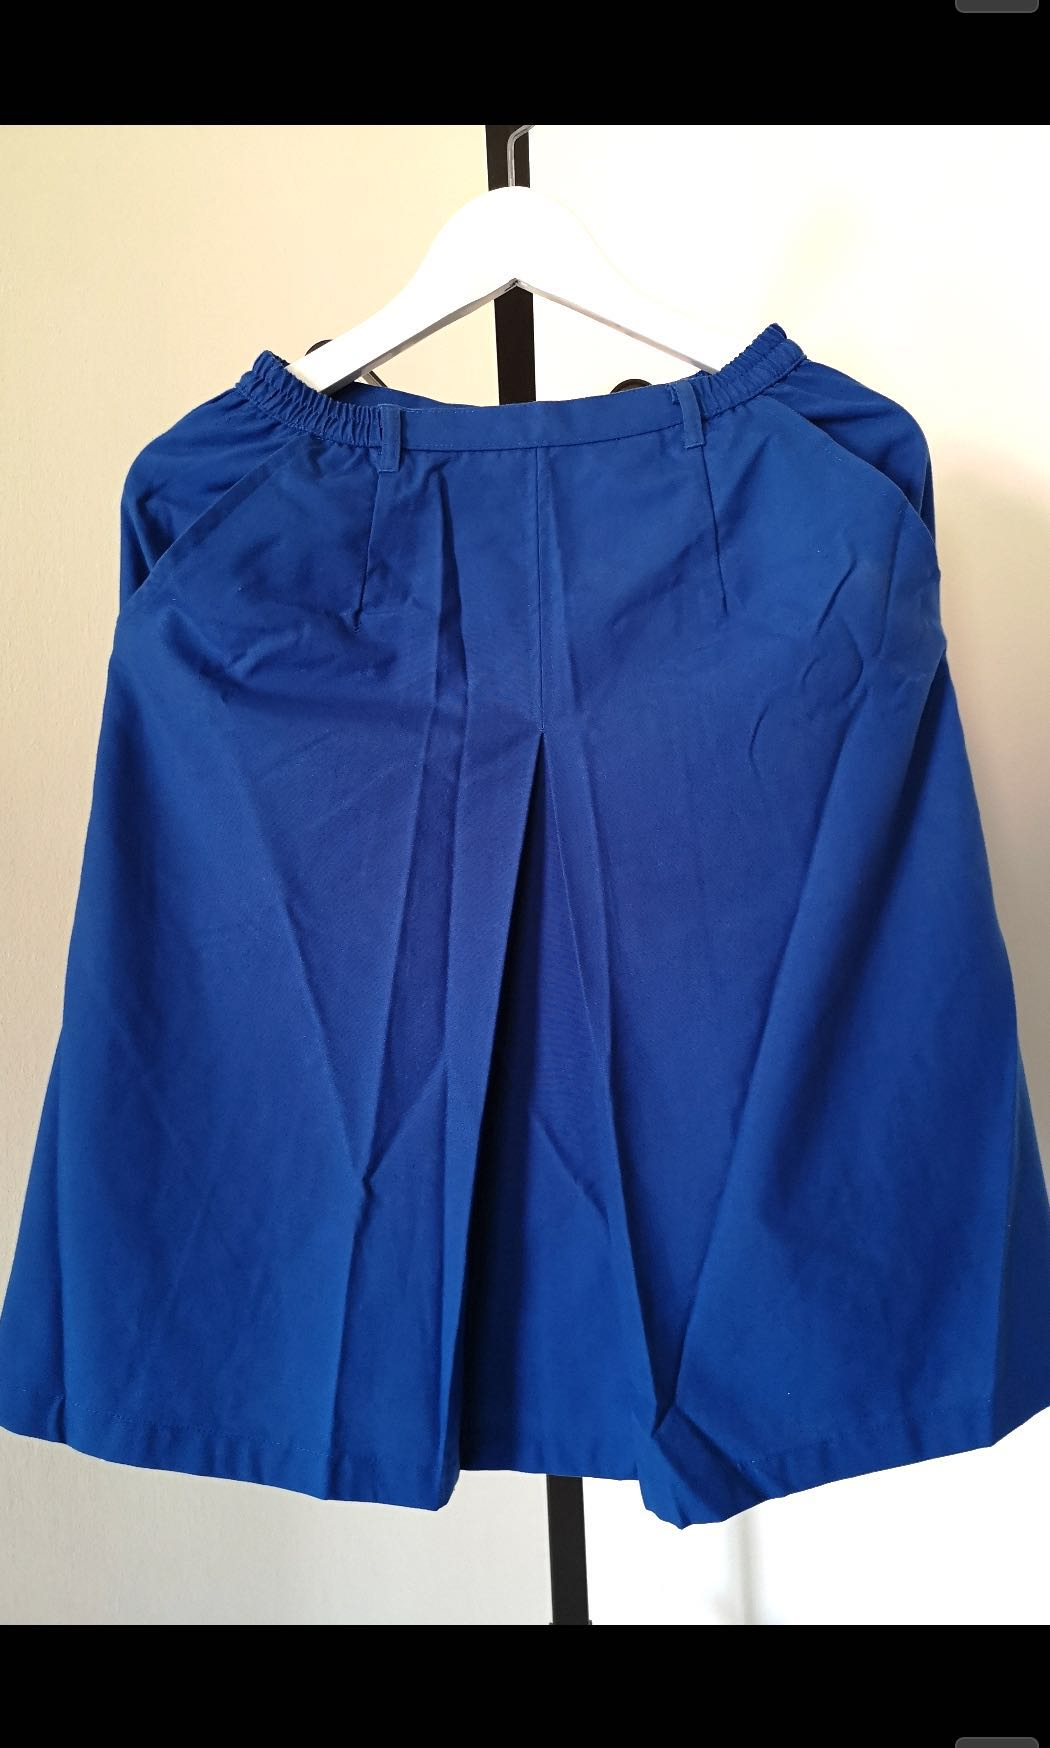 Girl Guide Uniform - Skirt